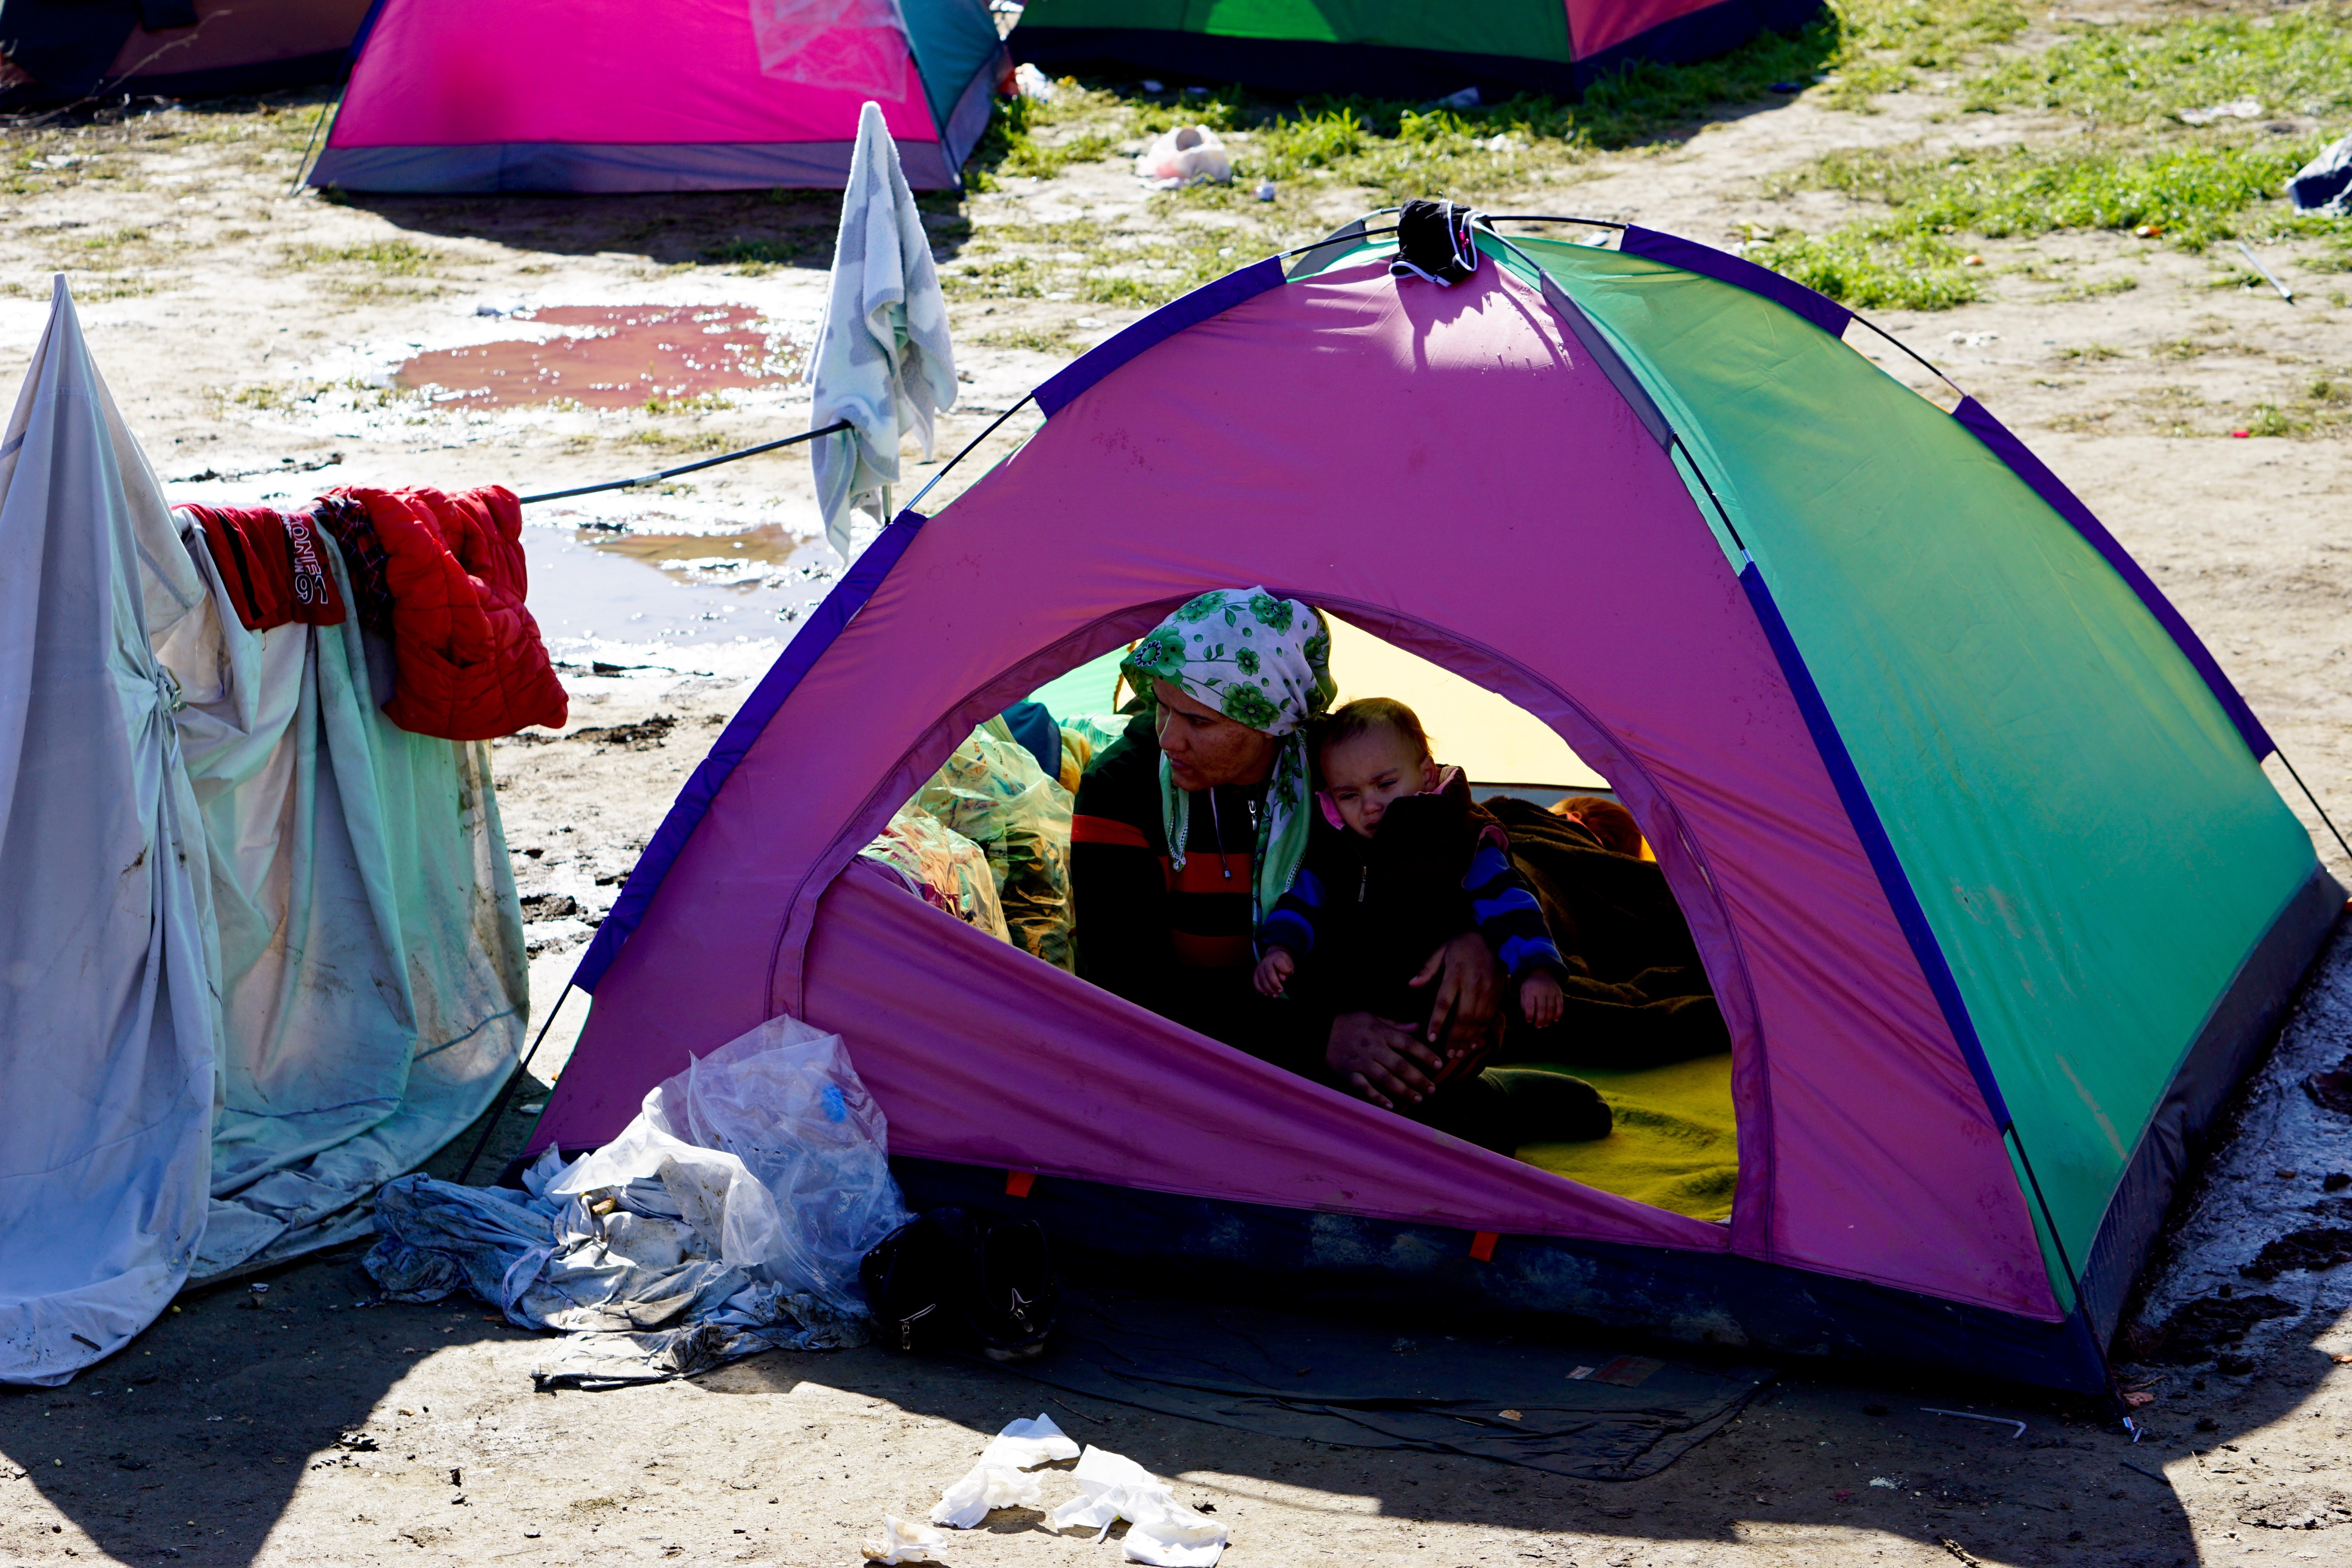 A woman and child huddle in a tent in a makeshift encampment in Idomeni, Greece, waiting for permission to move onto other points in Europe, March 4, 2016.